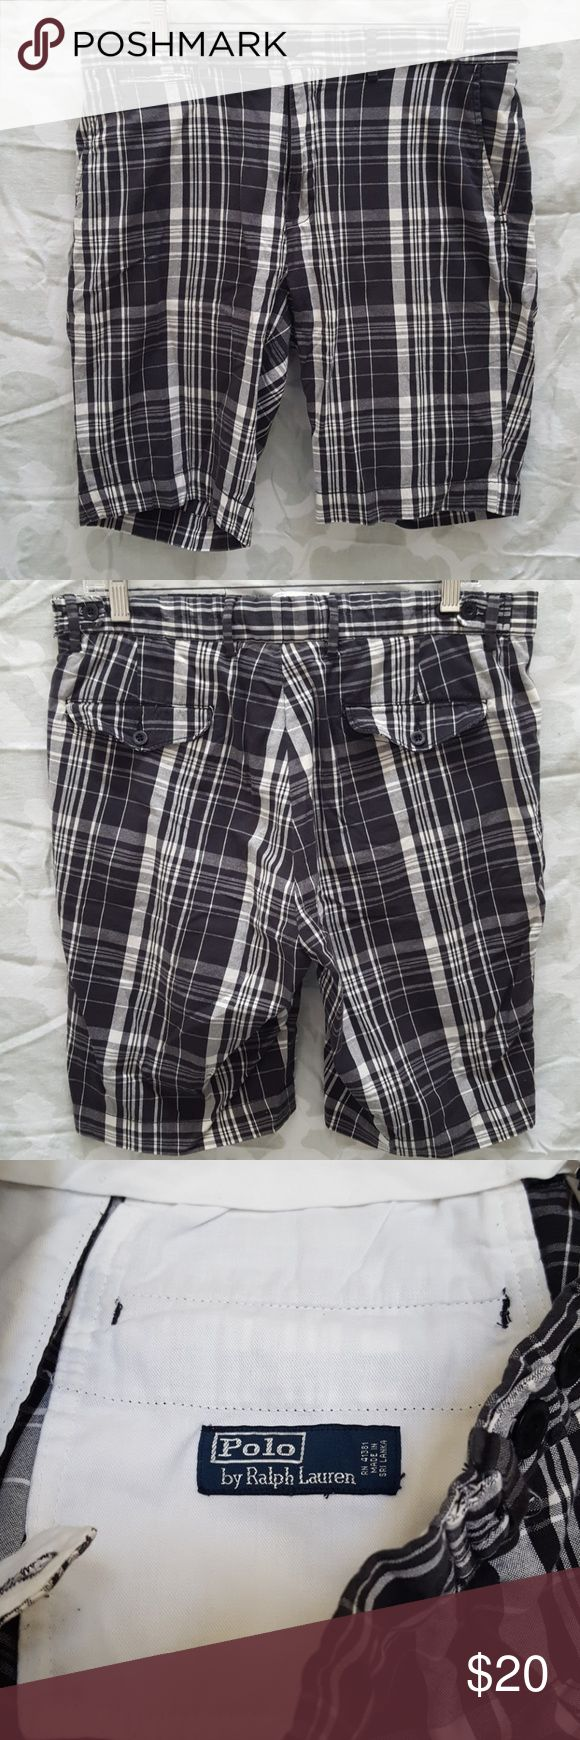 Vtg Polo Ralph Lauren Plaid Flat Front Shorts For sale is a used pair of Vintage Mens Polo Ralph Lauren Plaid Flat Front shorts.   They are a mens waist size 33   Material: 100% Cotton  Color: Black/Grey/White  Shorts are in good used condition for its age normal wear from wash. Great piece to own! be sure to pick this up today!  Offers welcomed using offer button.   NO TRADES.  NO LOWBALLING. Polo by Ralph Lauren Shorts